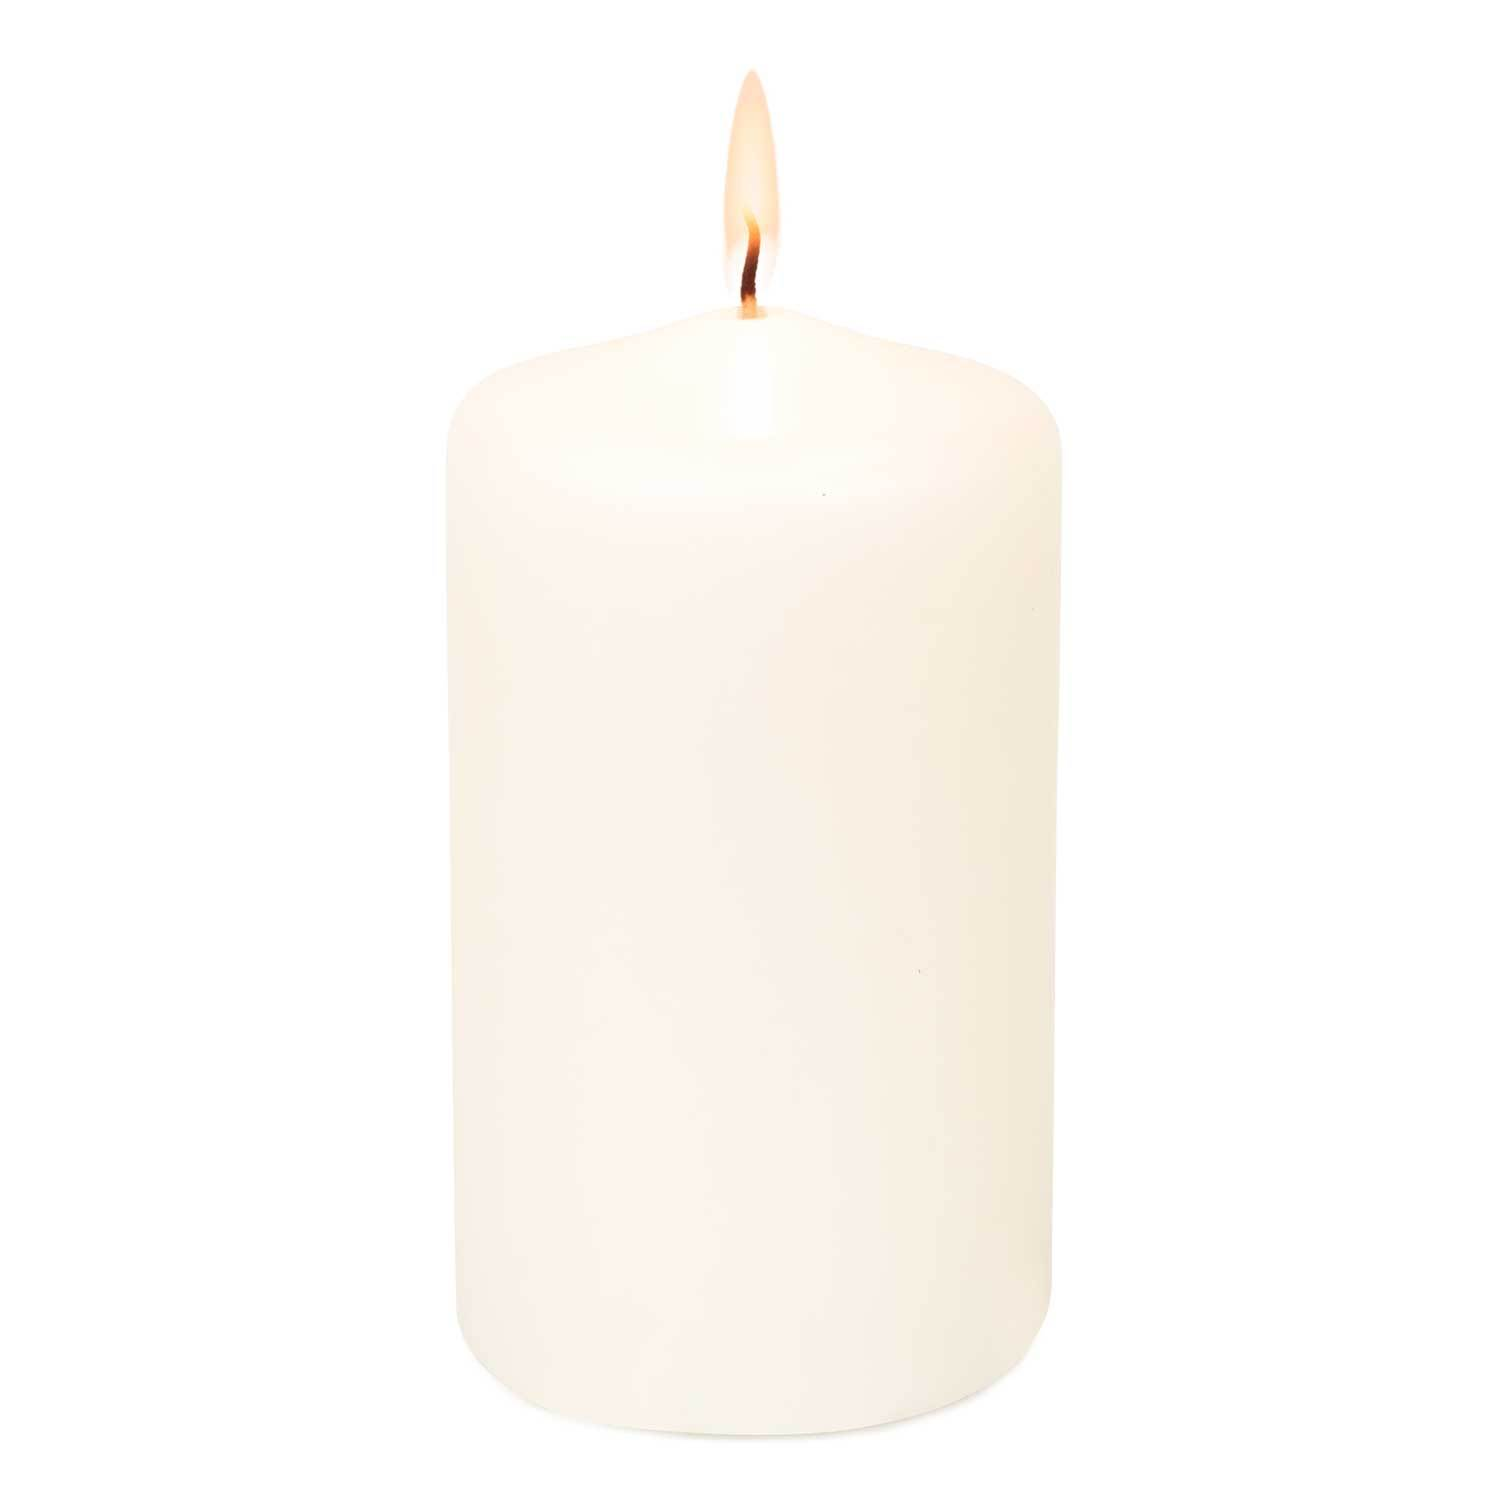 3x4 Unscented White Pillar Candle Candles Candlemart.com $ 2.99